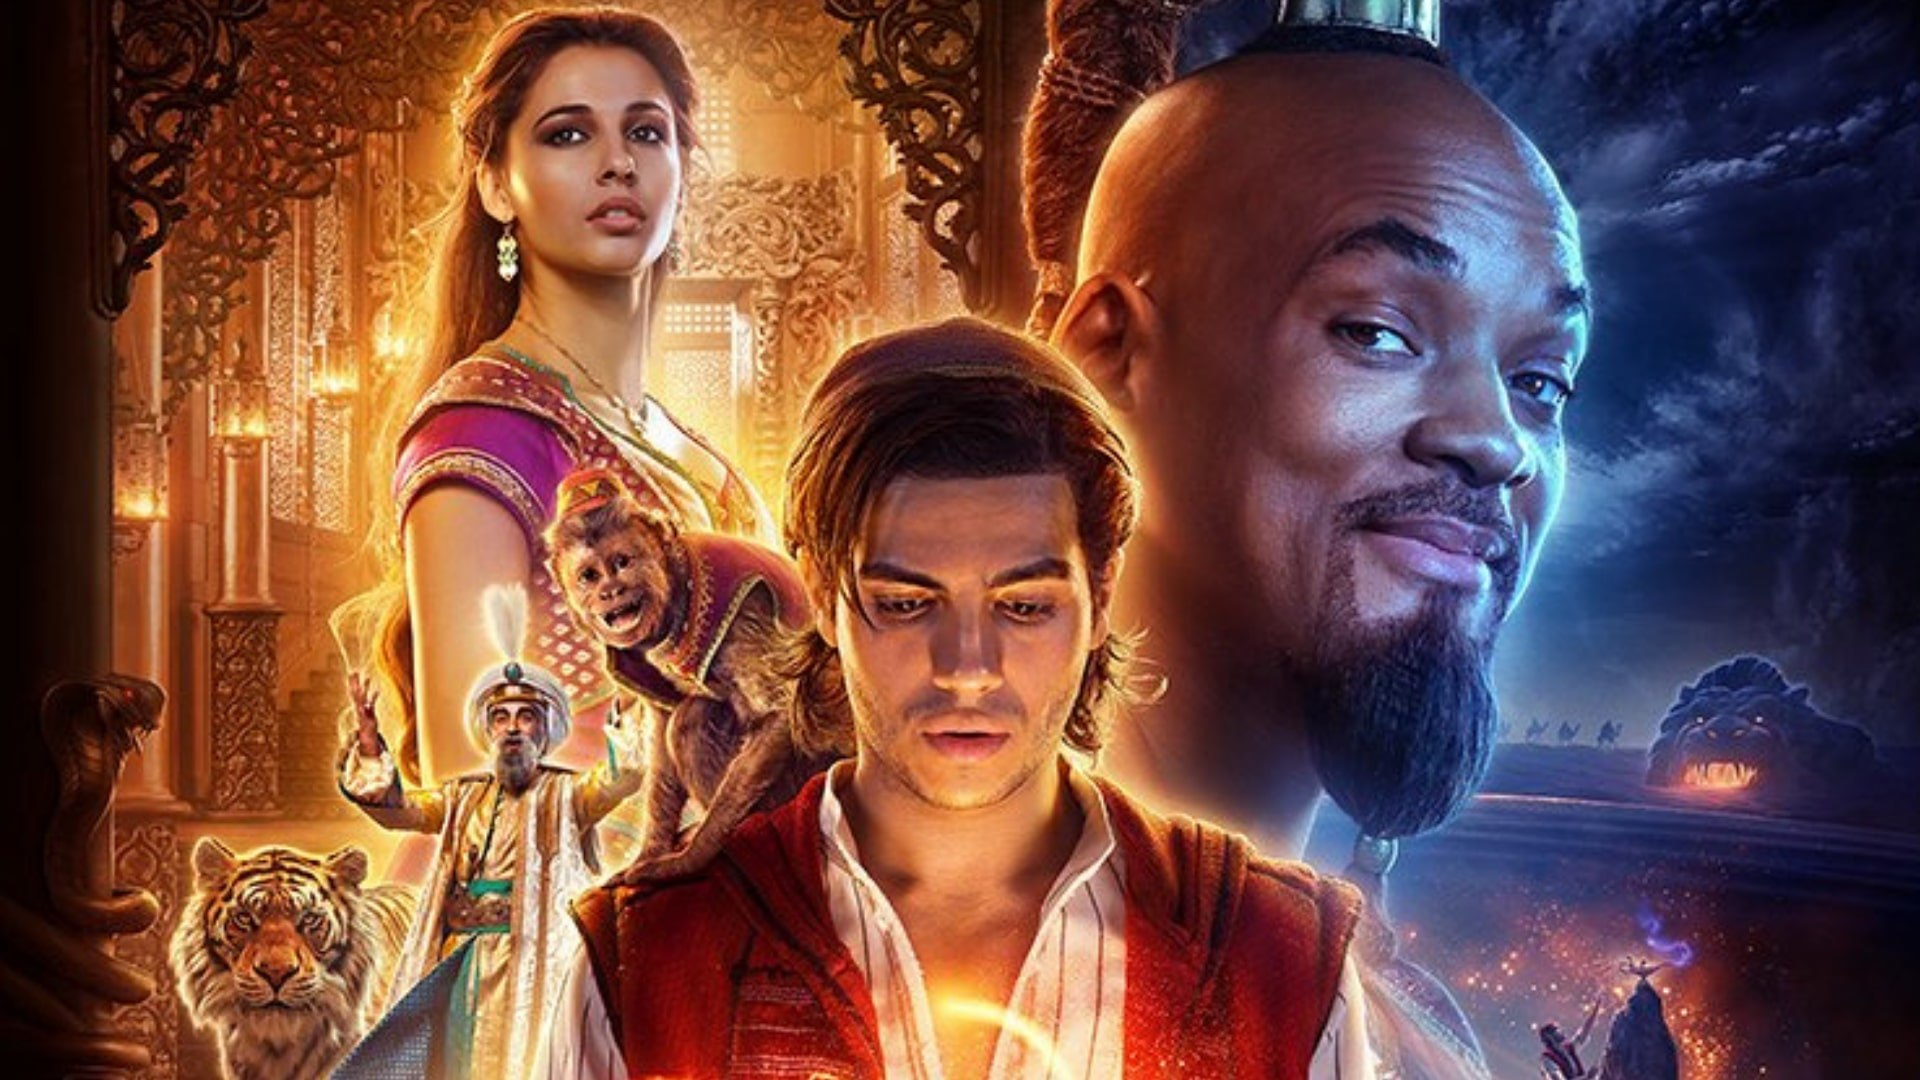 [Film Review] Aladdin